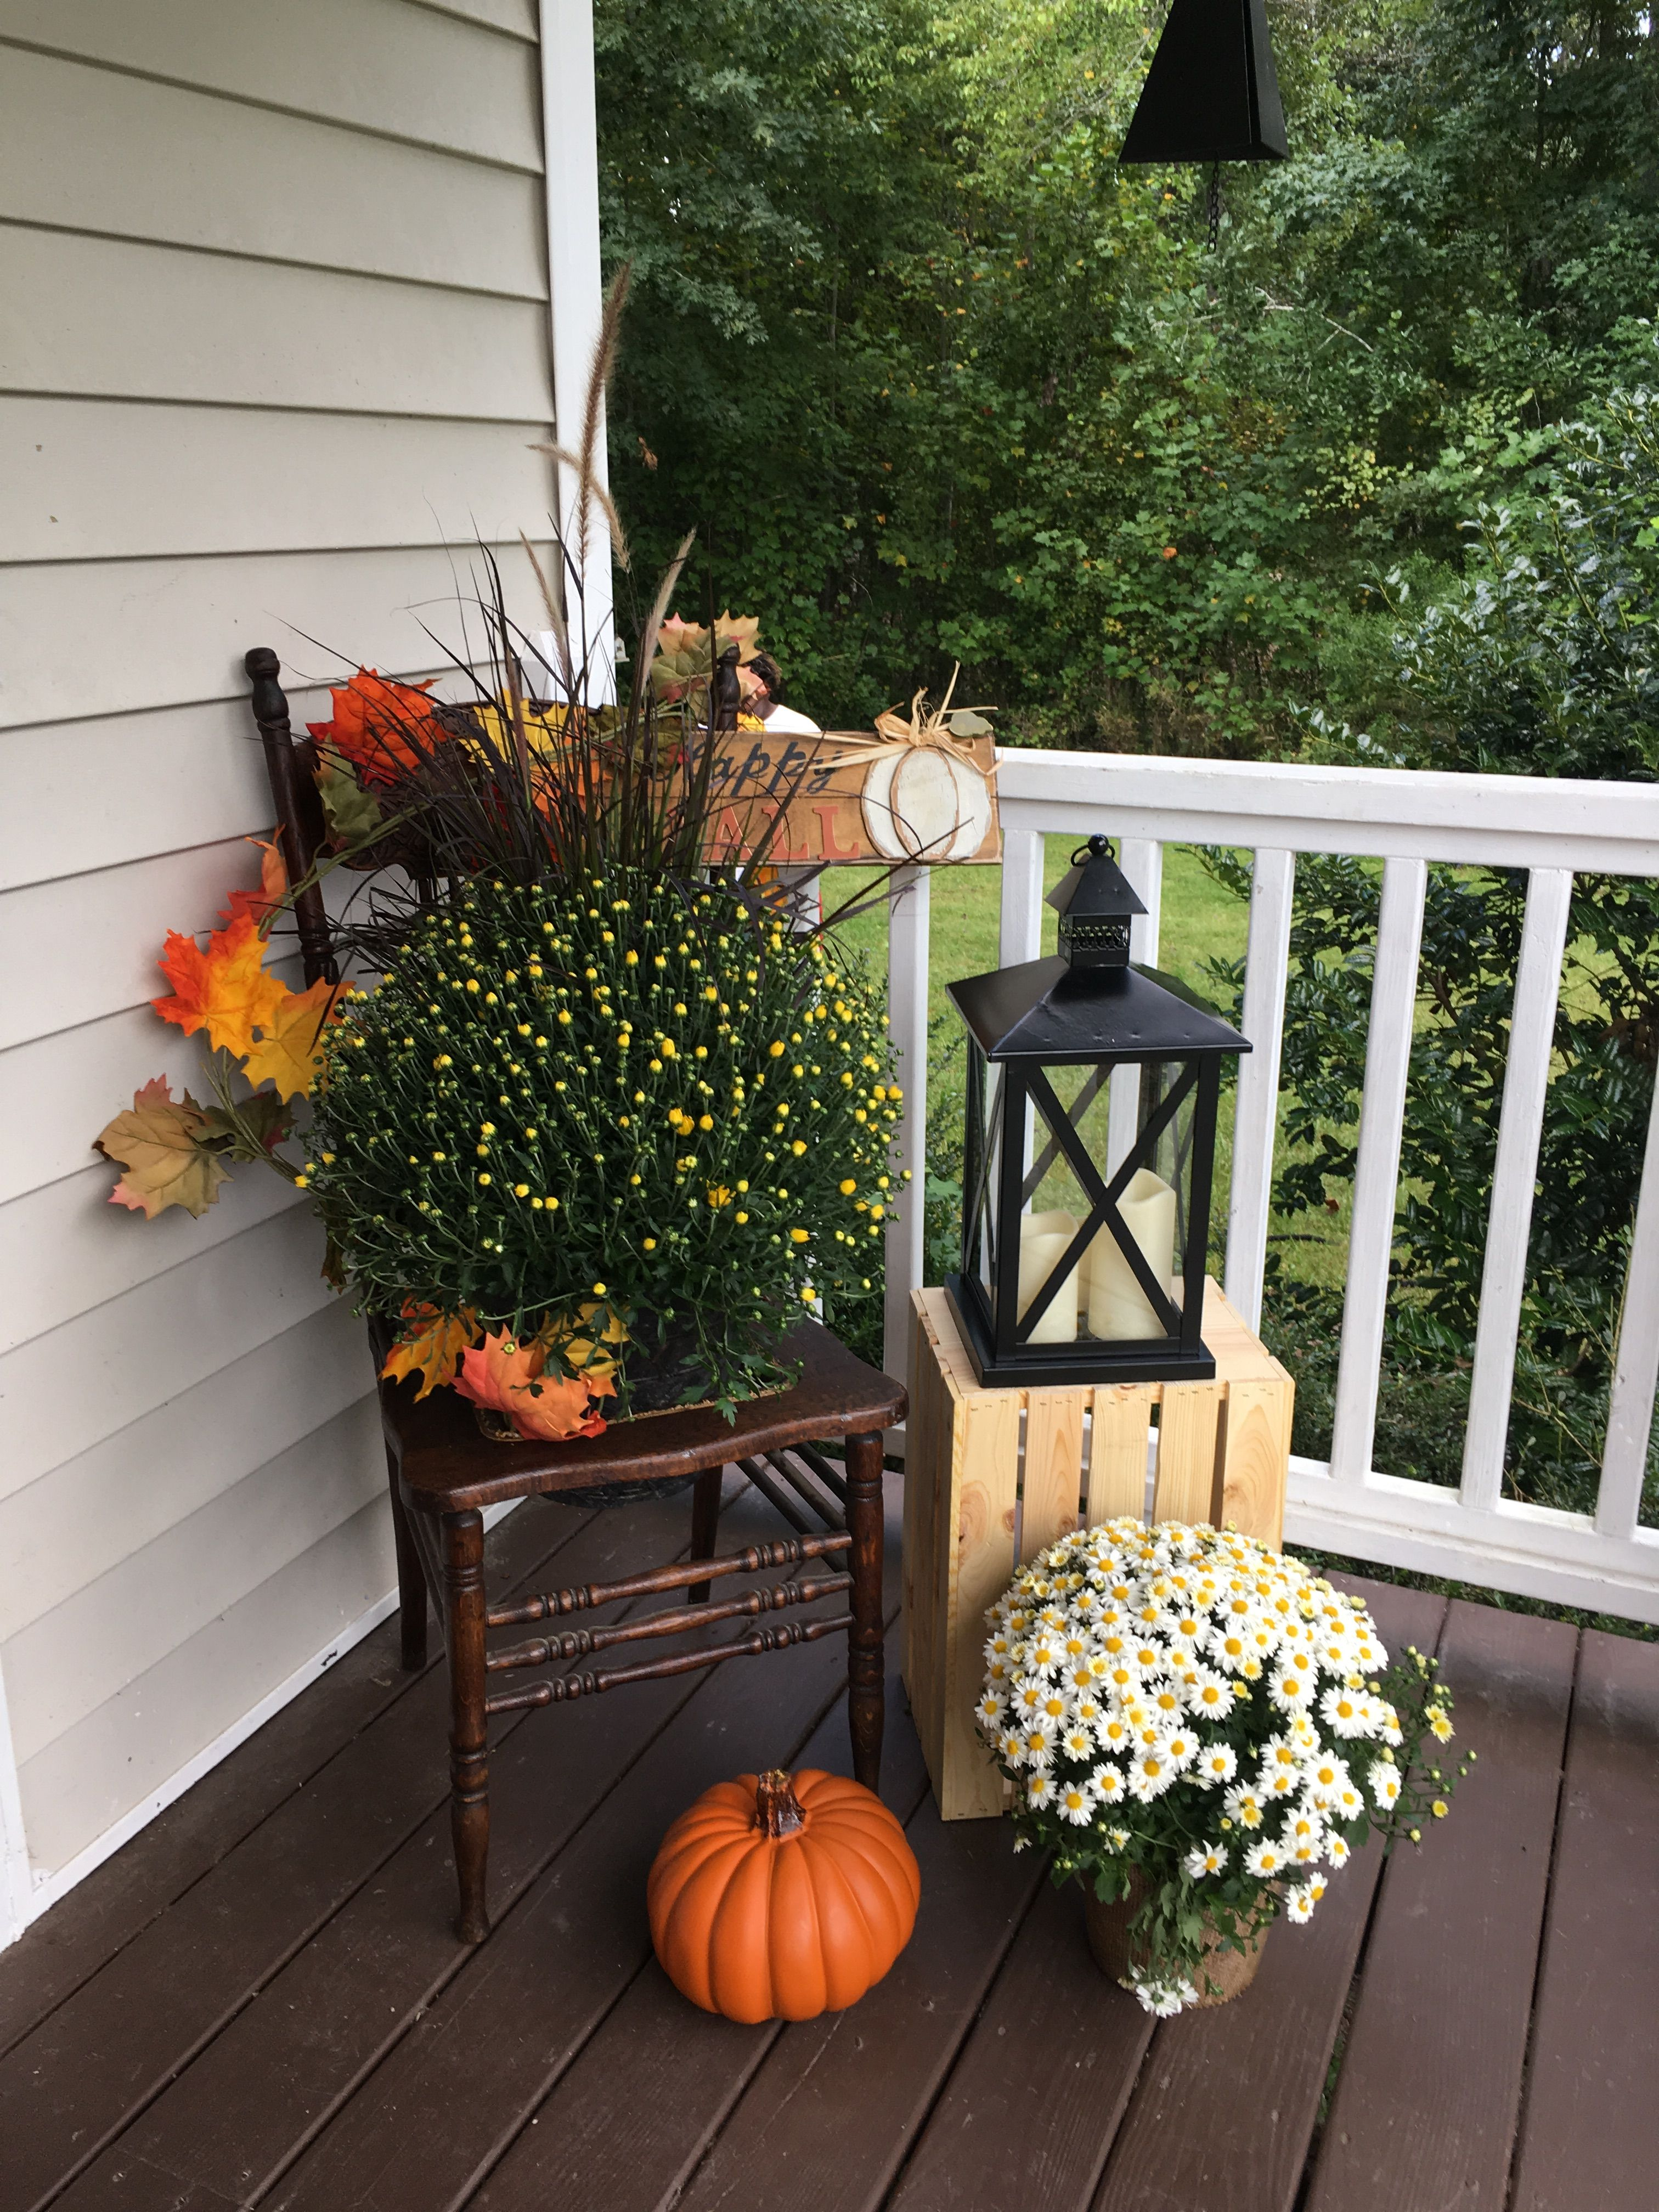 My Own Front Porch Fall Front Porch Decor Fall Decorations Porch Fall Outdoor Decor